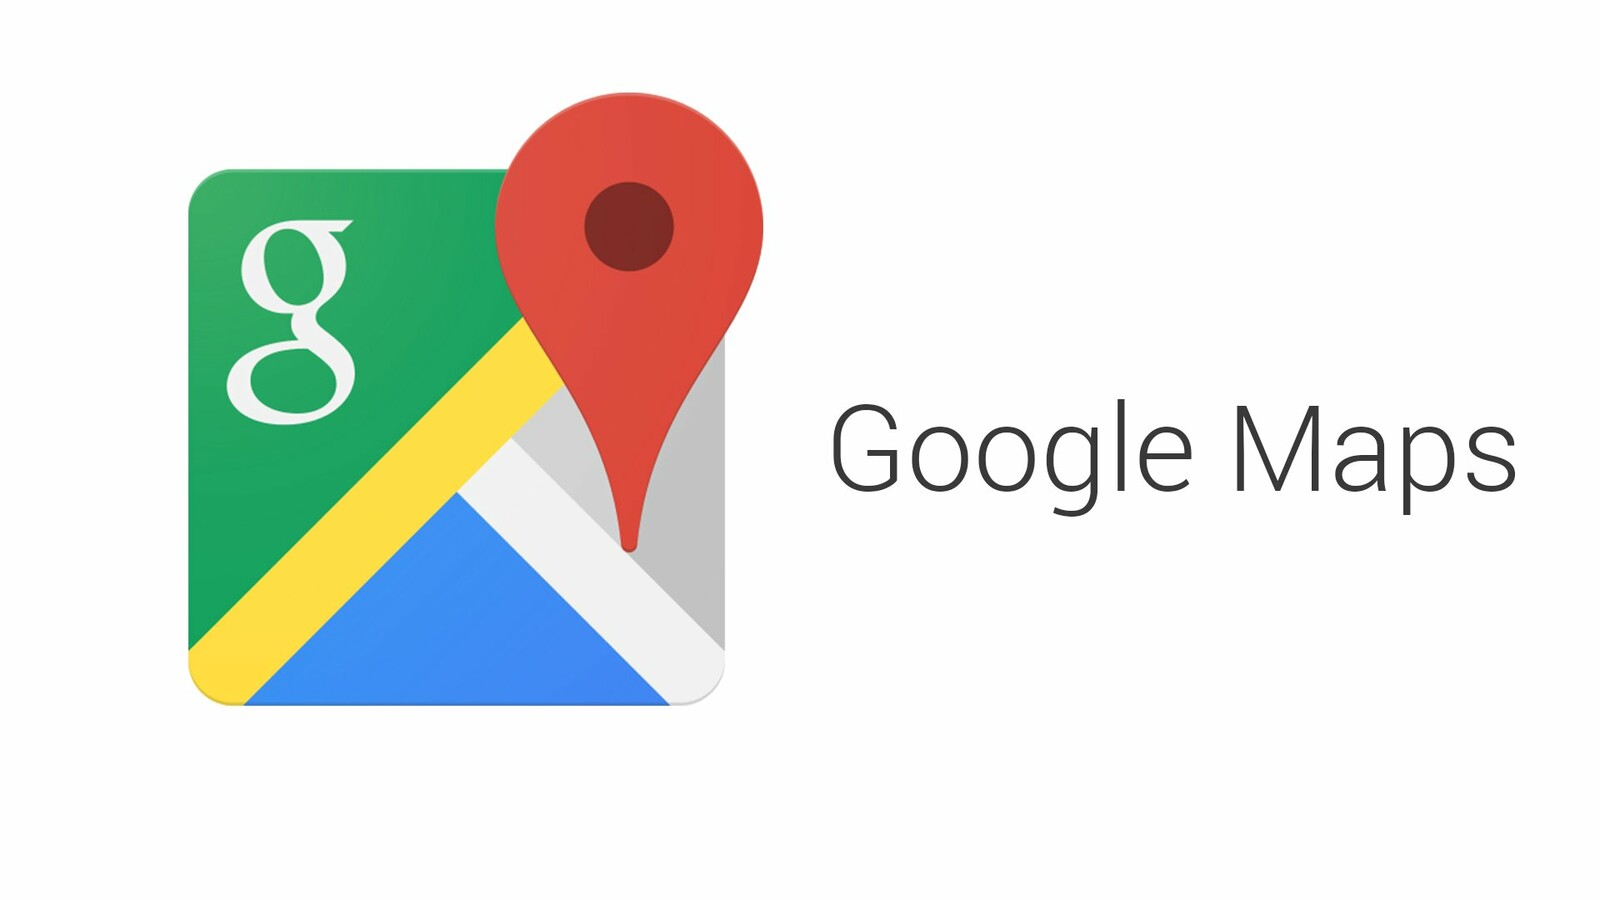 Google Maps adds 39 new languages spoken by an estimated 1.25 ... on microsoft maps, topographic maps, bing maps, google chrome, ipad maps, goolge maps, google search, iphone maps, road map usa states maps, aerial maps, gppgle maps, google goggles, googlr maps, search maps, web mapping, google voice, msn maps, android maps, stanford university maps, google moon, google sky, route planning software, google mars, waze maps, aeronautical maps, satellite map images with missing or unclear data, gogole maps, online maps, google map maker, google docs, yahoo! maps, google translate, amazon fire phone maps, googie maps,